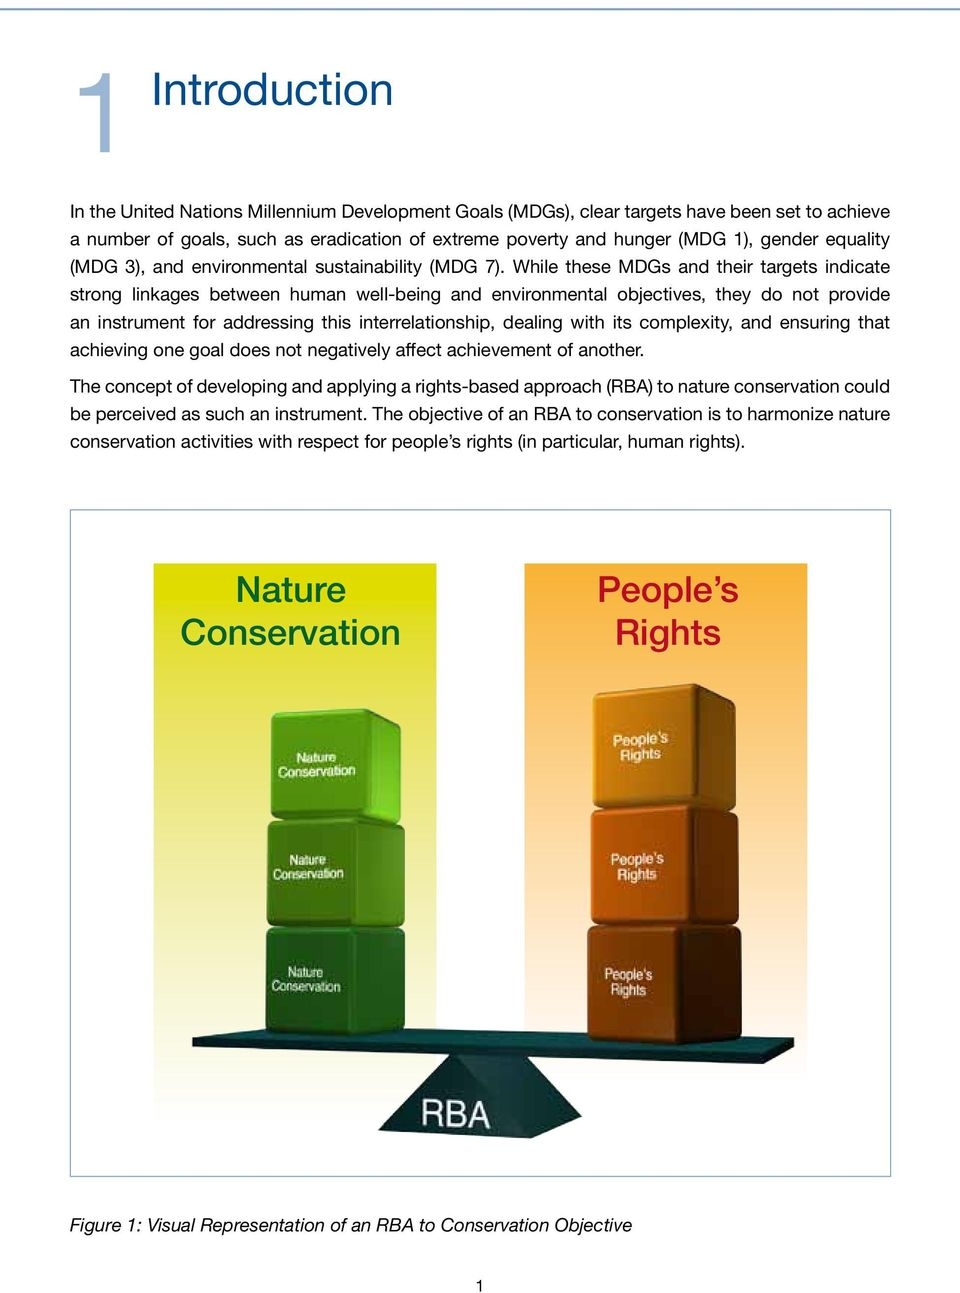 While these MDGs and their targets indicate strong linkages between human well-being and environmental objectives, they do not provide an instrument for addressing this interrelationship, dealing